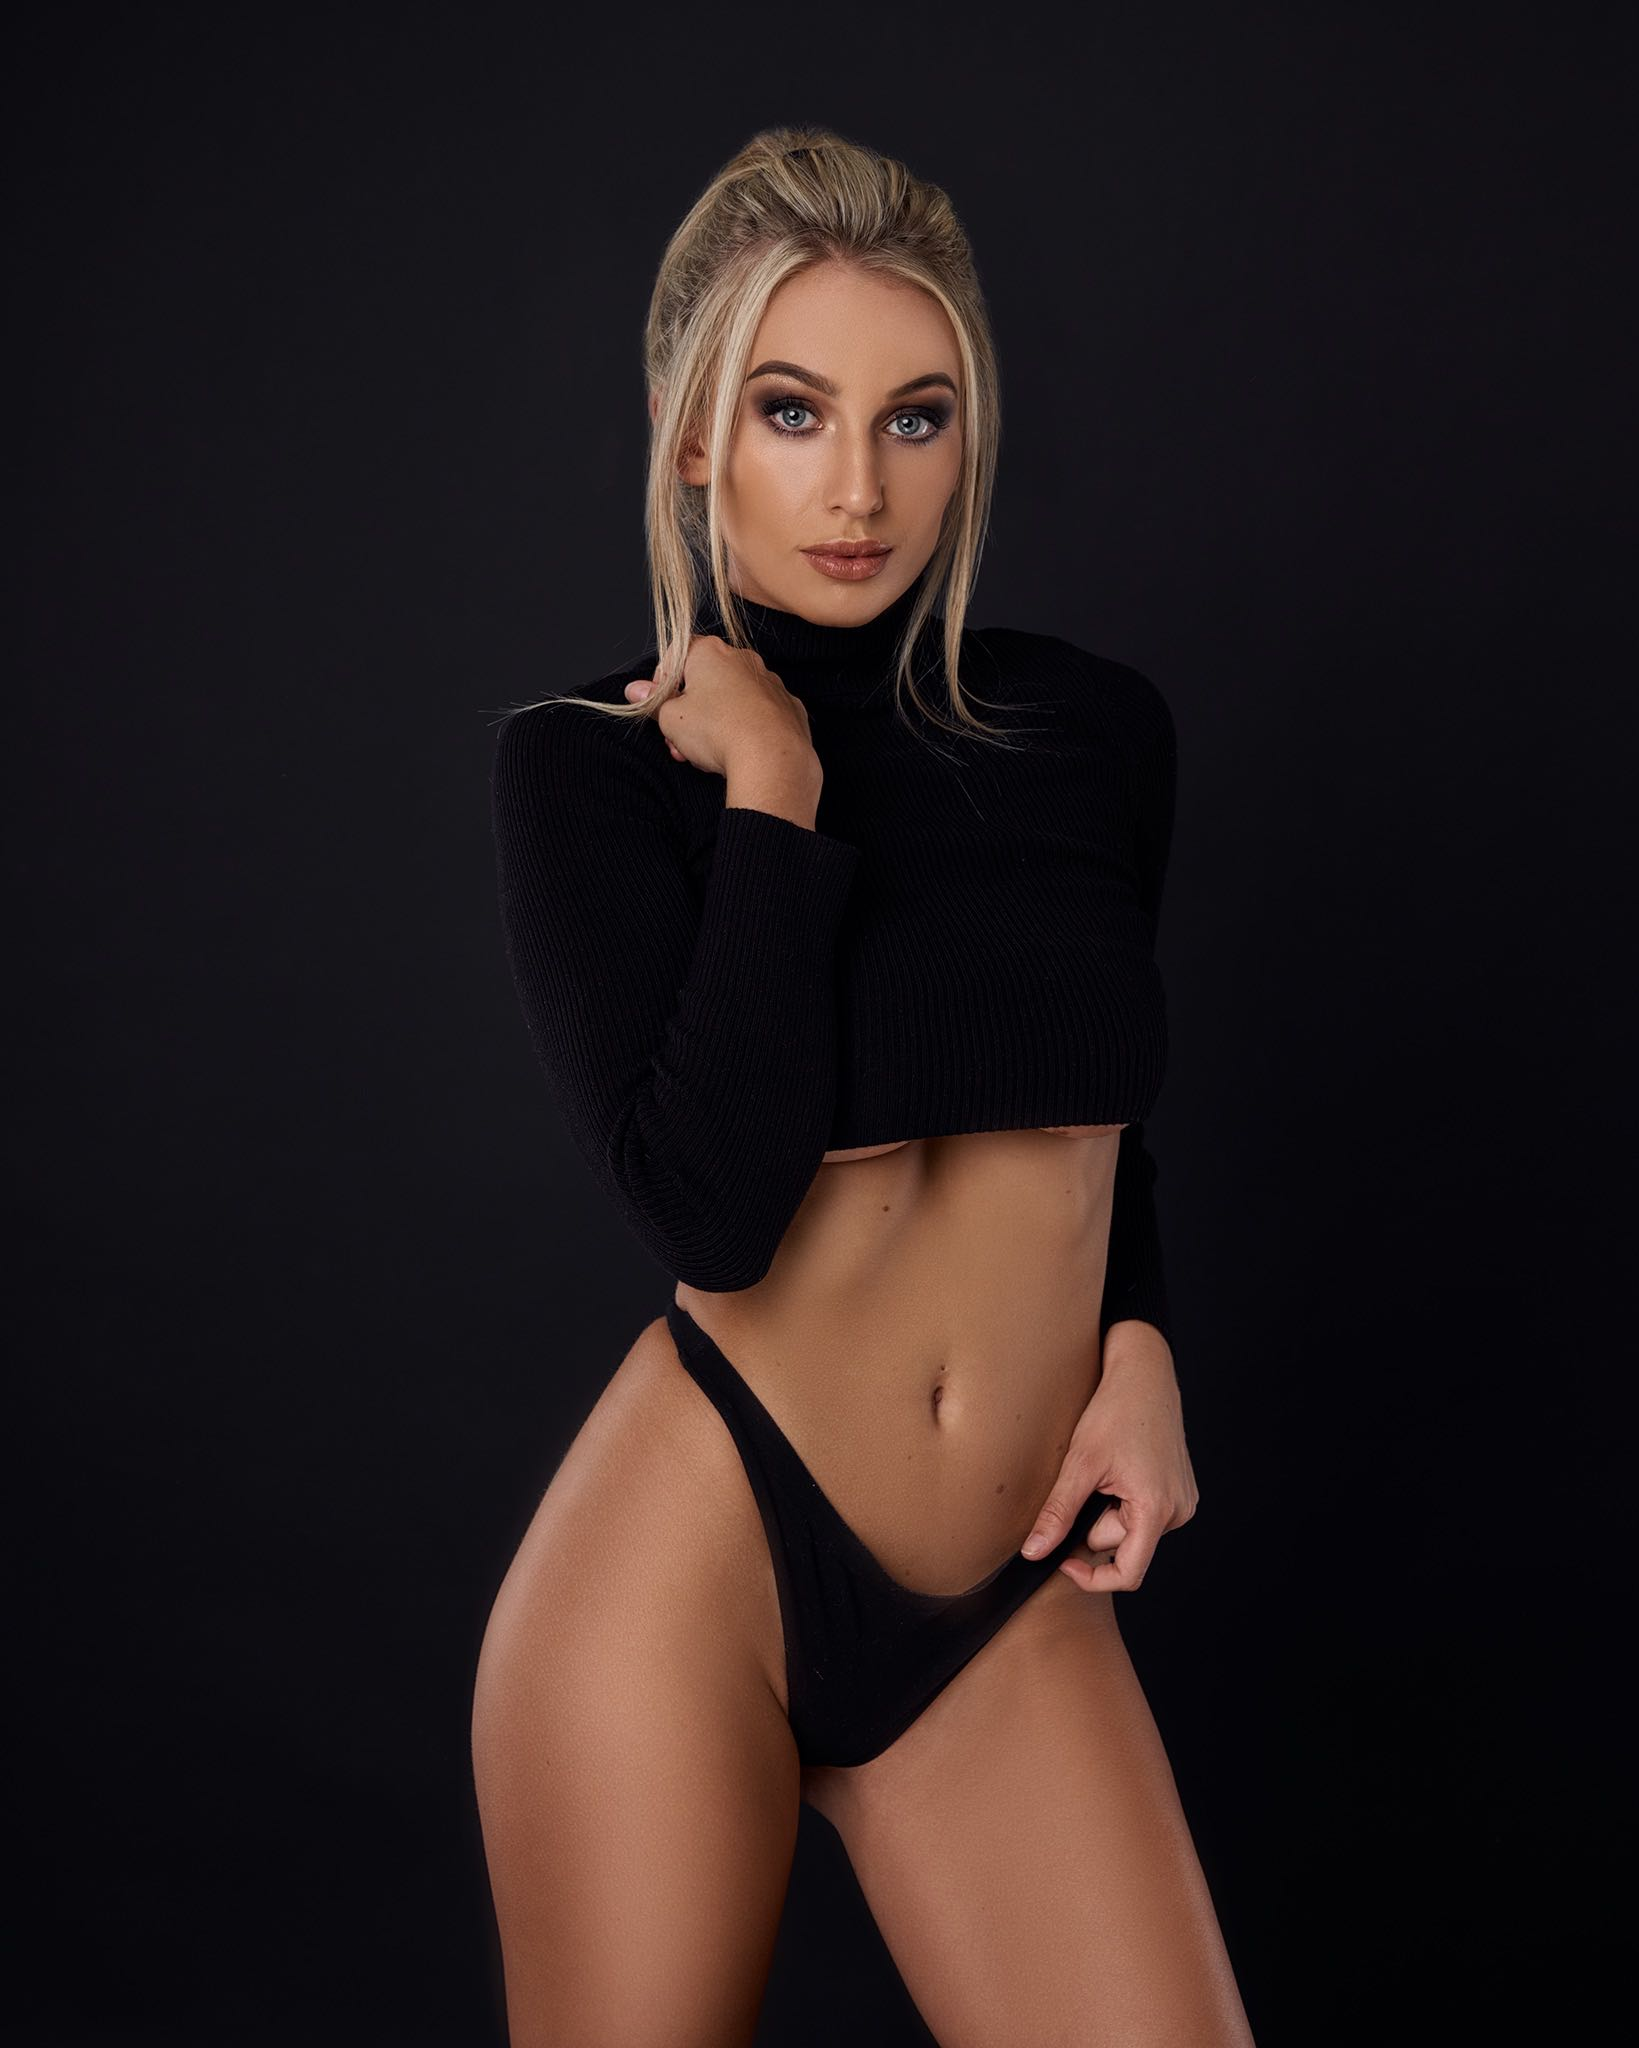 Our South African Babes feature with Serren Williams